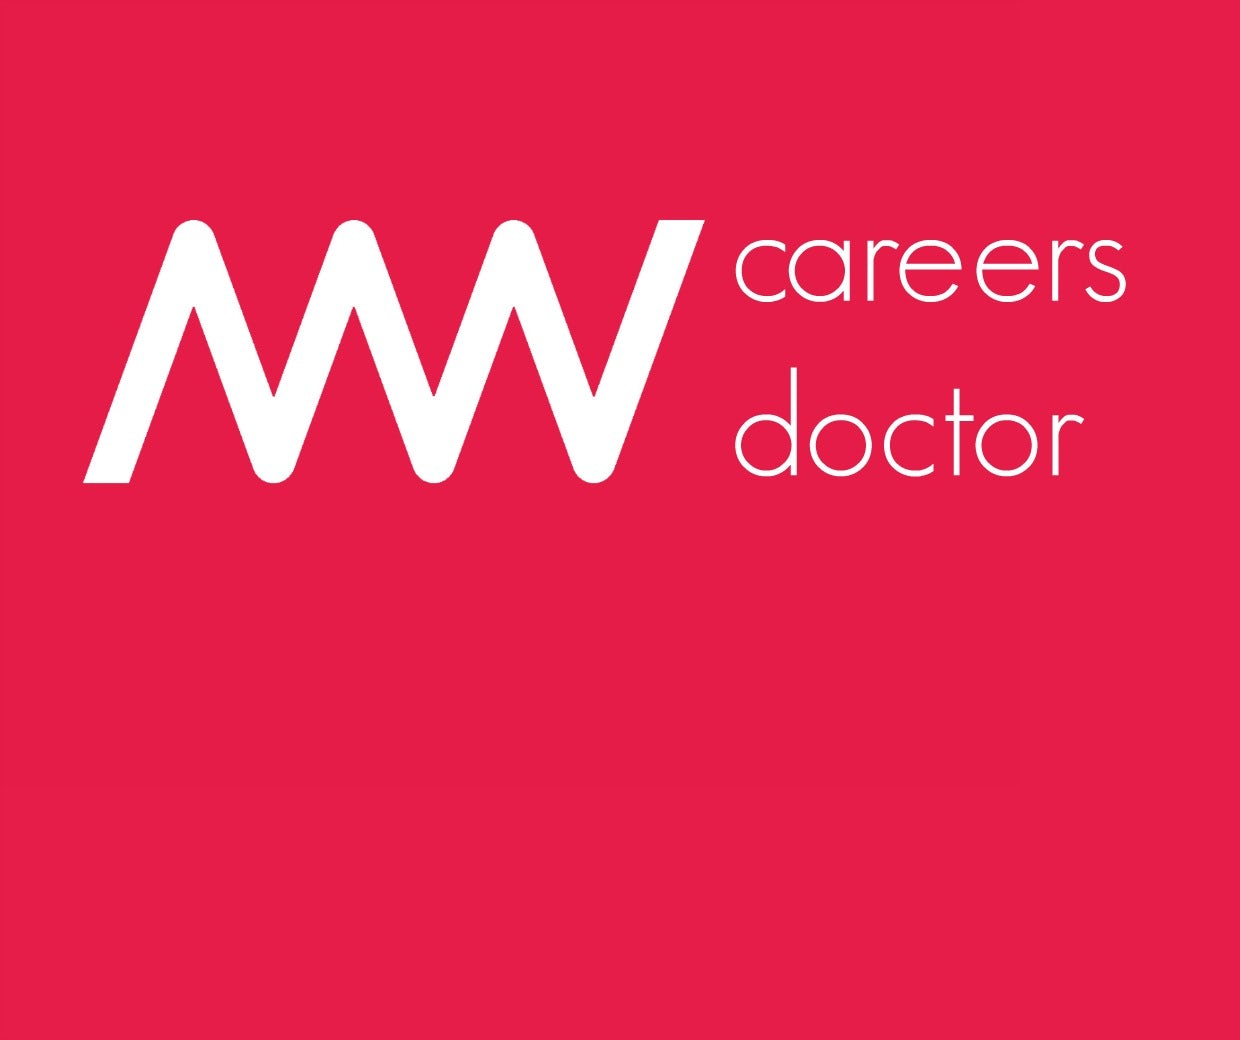 career development marketing week how to become a master of your career the latest marketing week podcast